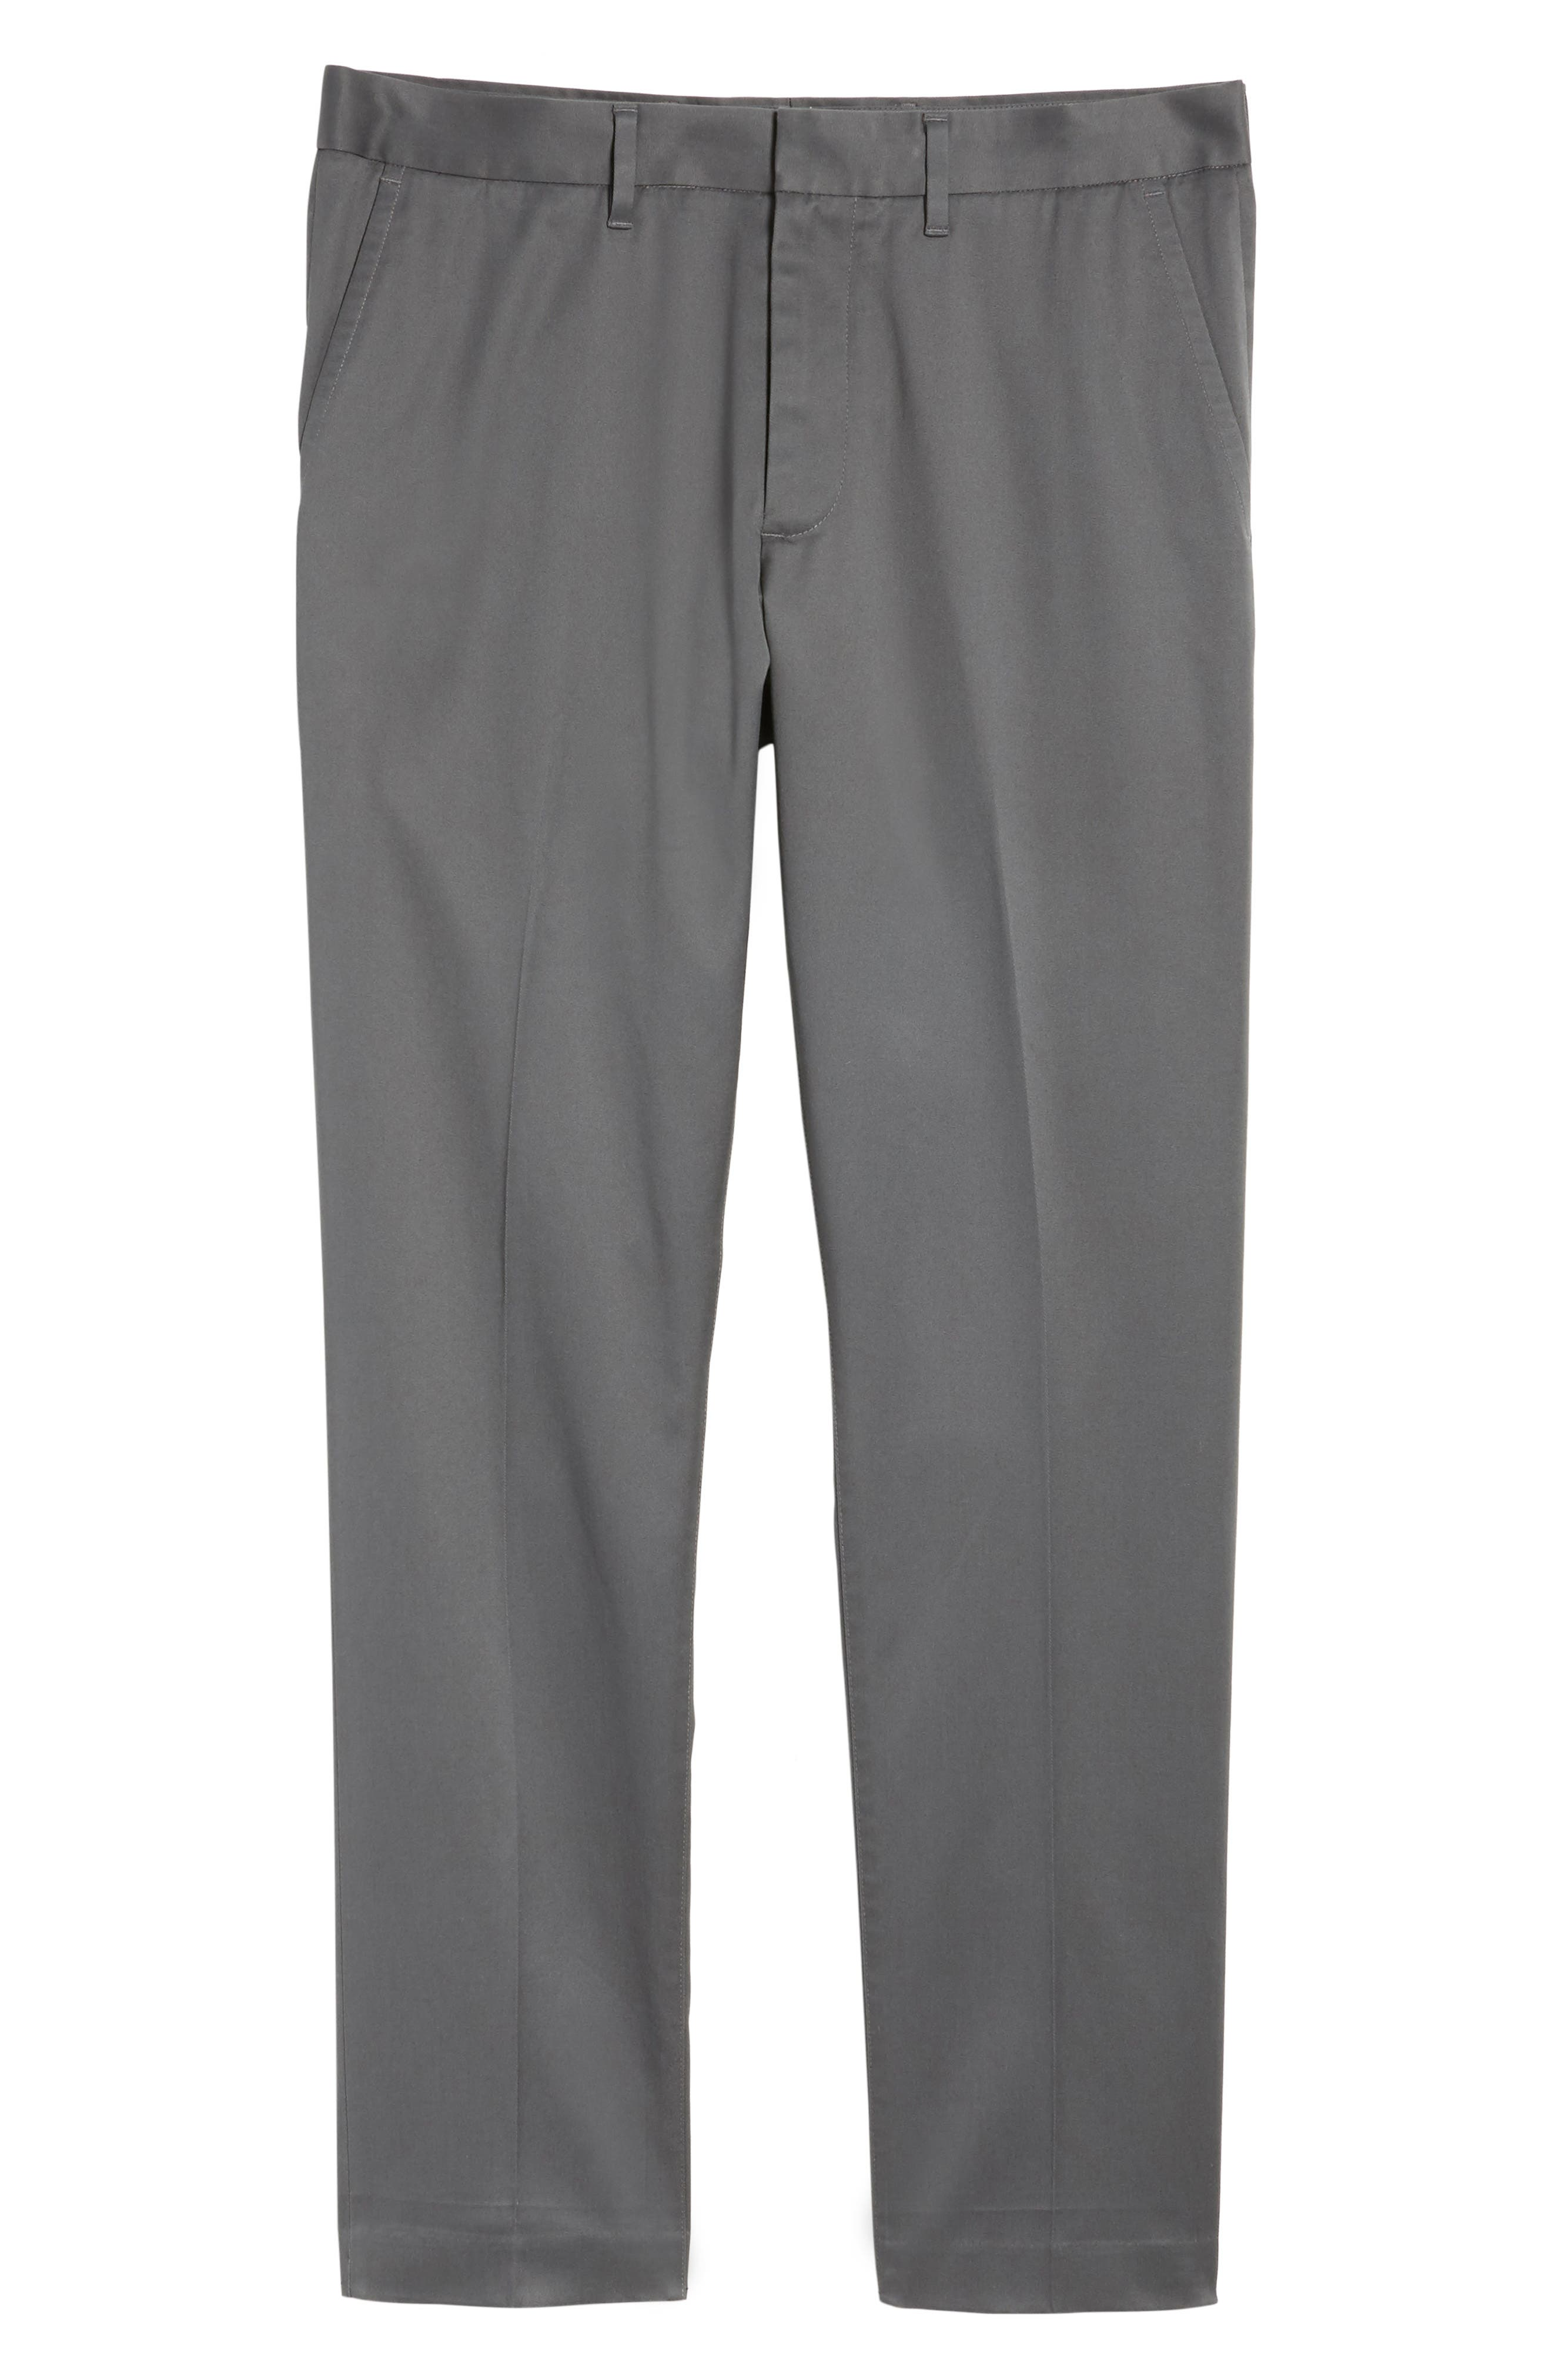 Athletic Fit Non-Iron Chinos,                             Alternate thumbnail 6, color,                             Grey Gate